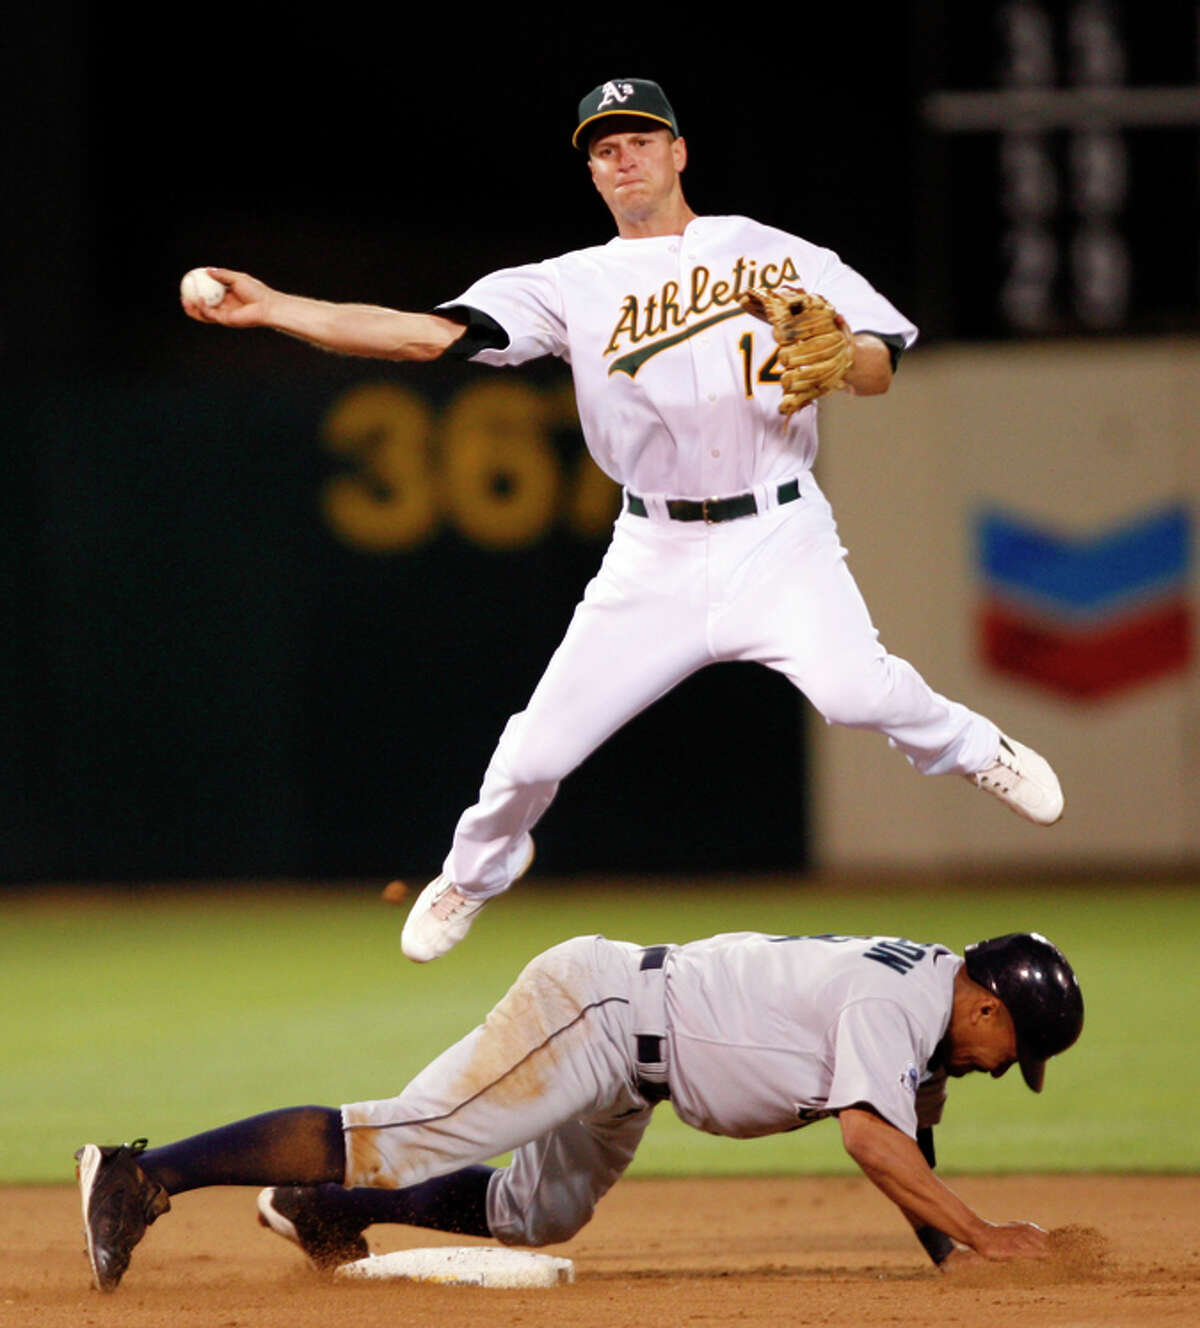 In a home game on July 5, 2007, then-A's second baseman Mark Ellis leaps over the Mariners' Jason Ellison but couldn't get the force out at first base. Ellis twice led the AL in fielding percentage.